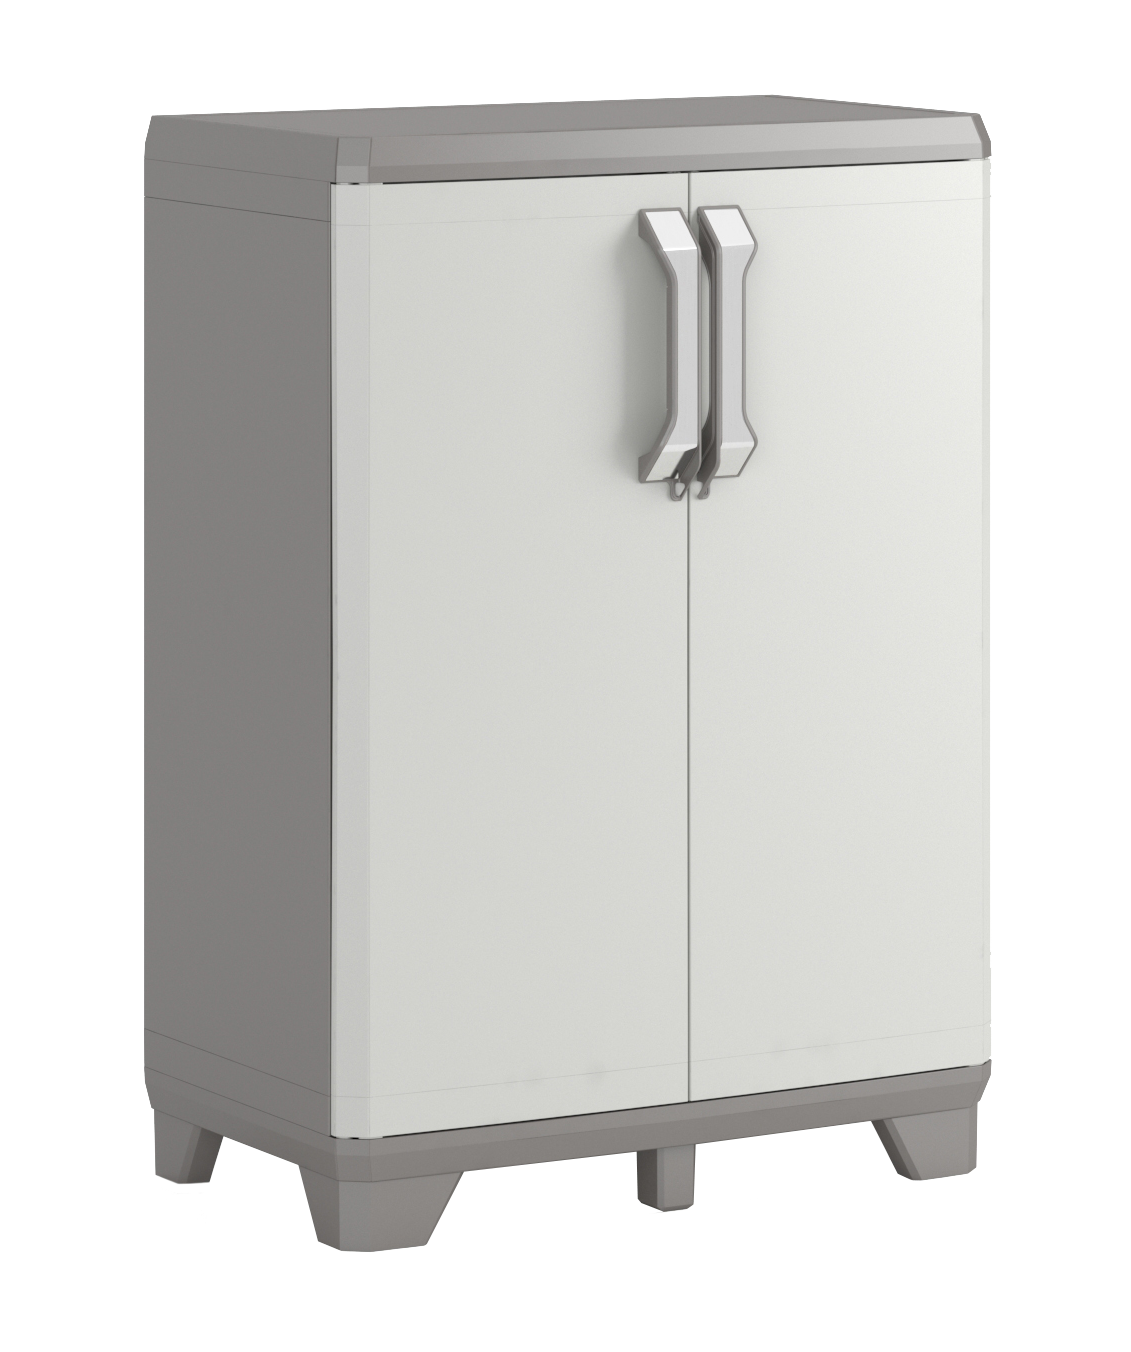 RF000715_Tidy-low-cabinet_close